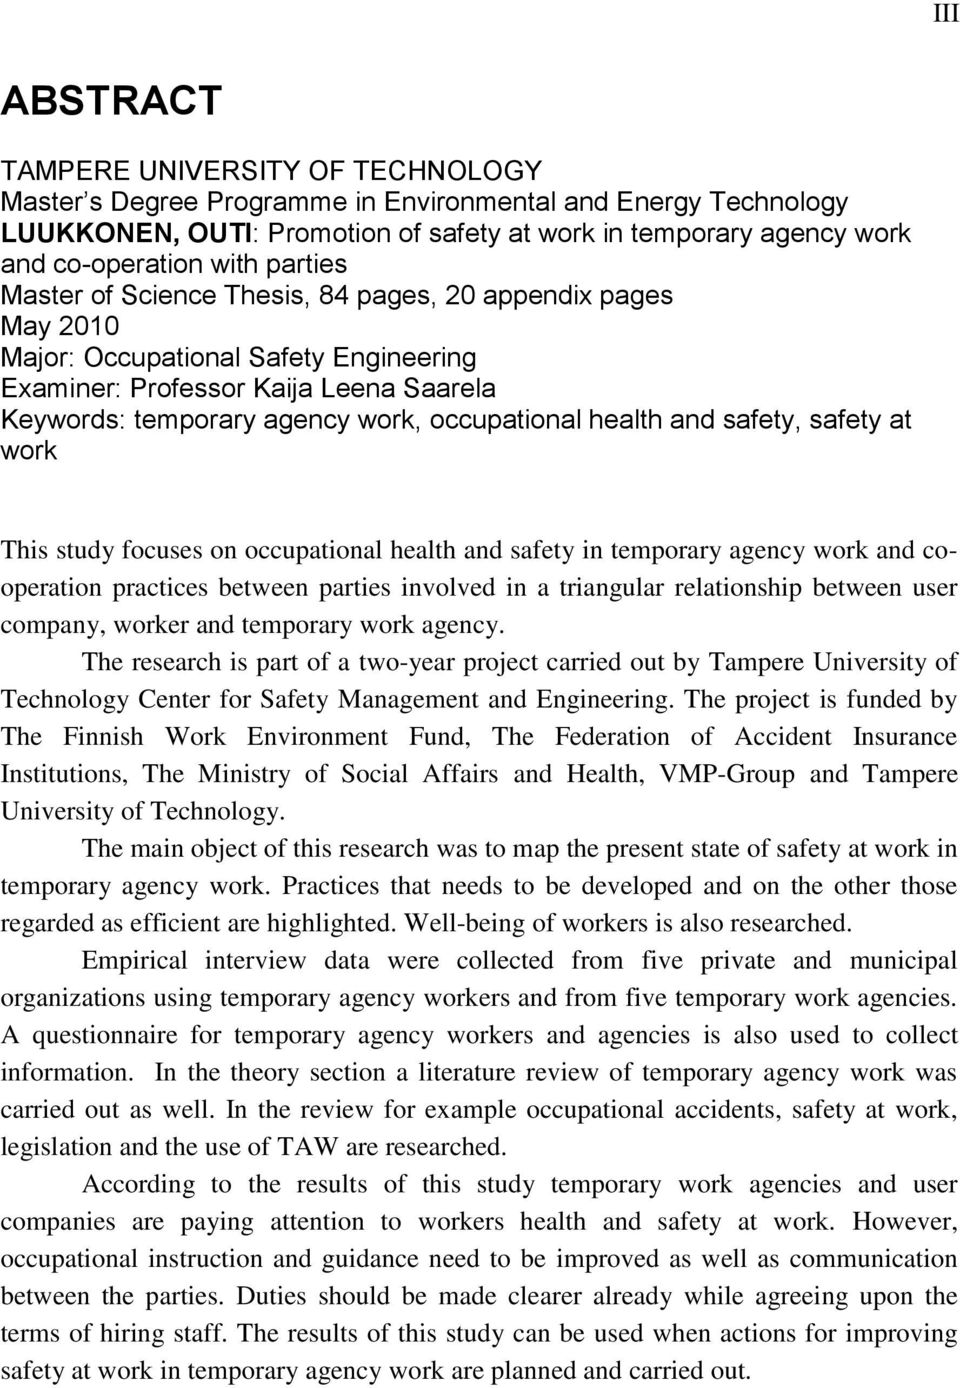 occupational health and safety, safety at work This study focuses on occupational health and safety in temporary agency work and cooperation practices between parties involved in a triangular